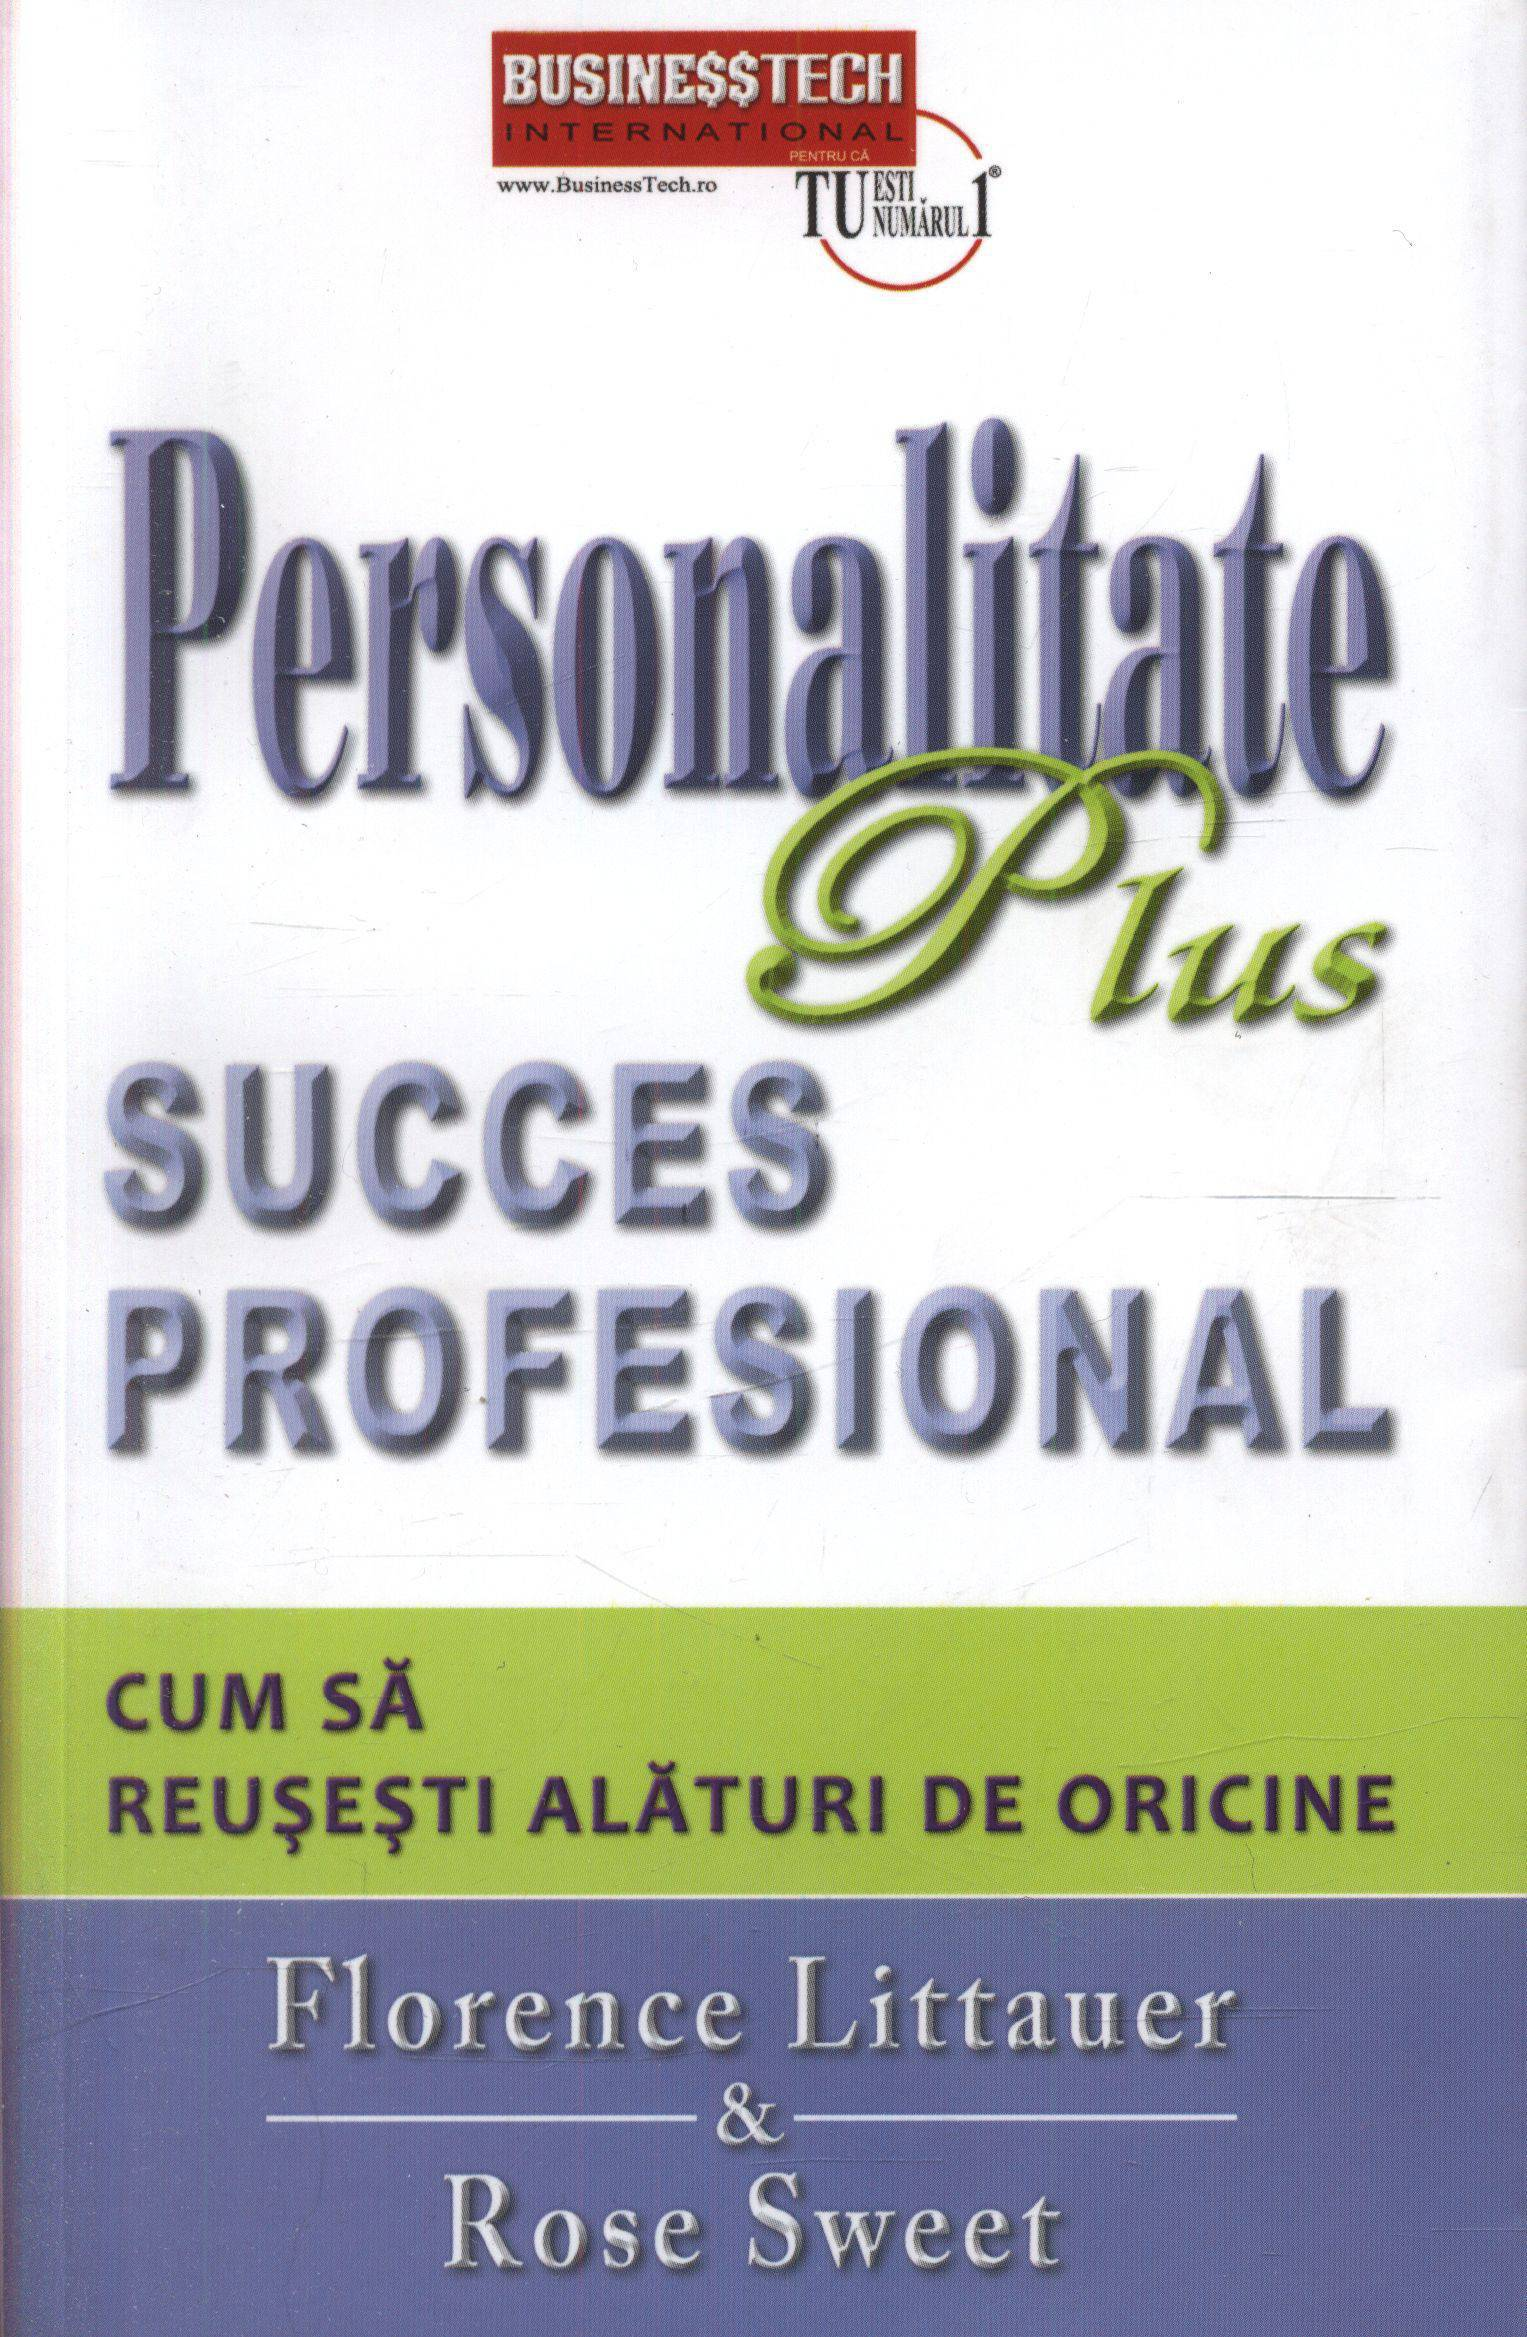 Personality Plus Florence Littauer Ebook